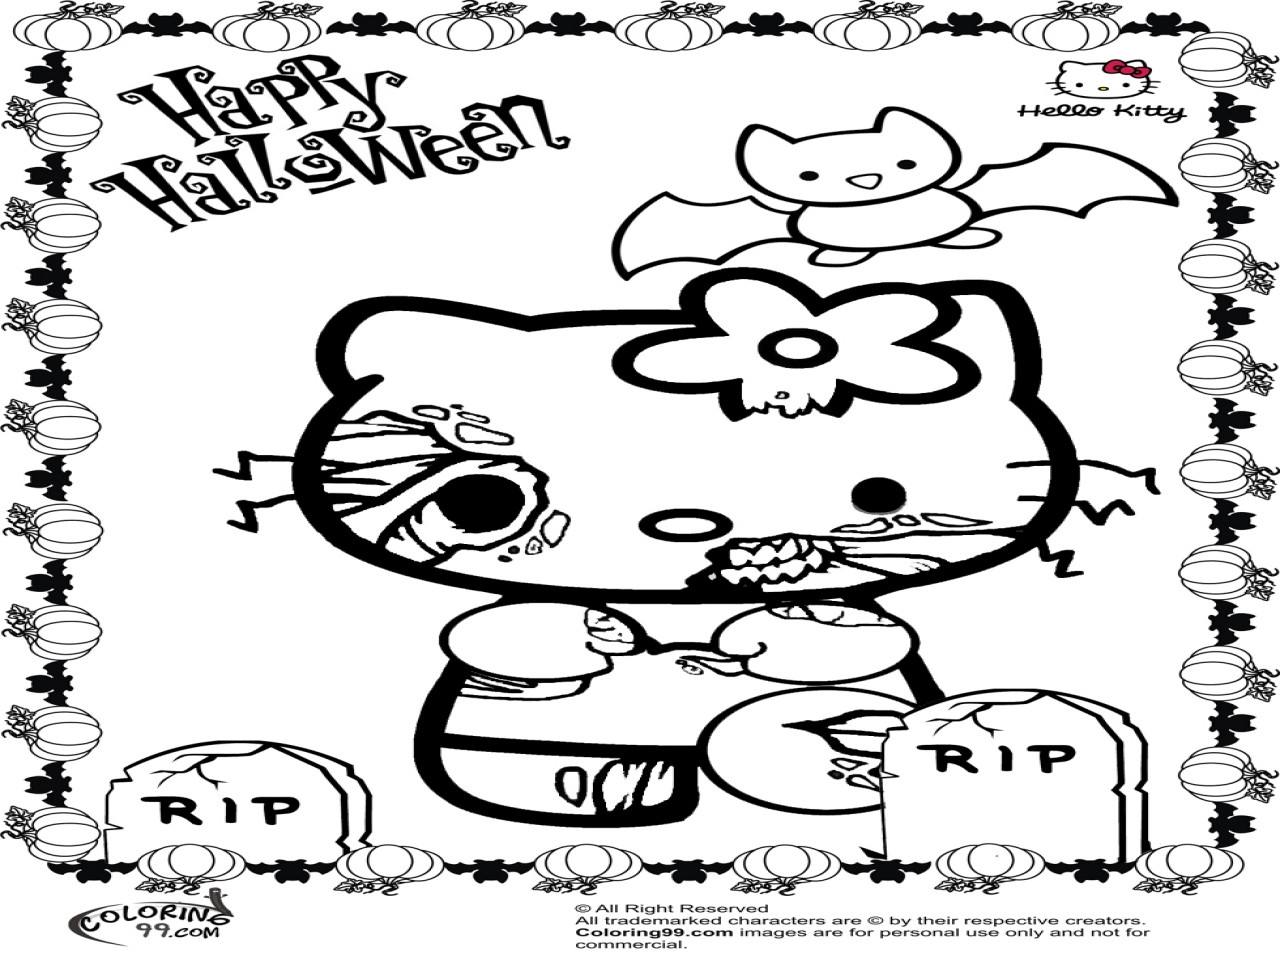 Disney Zombies Coloring Pages  Disney Zombie Coloring Kitty Halloween Pages grig3